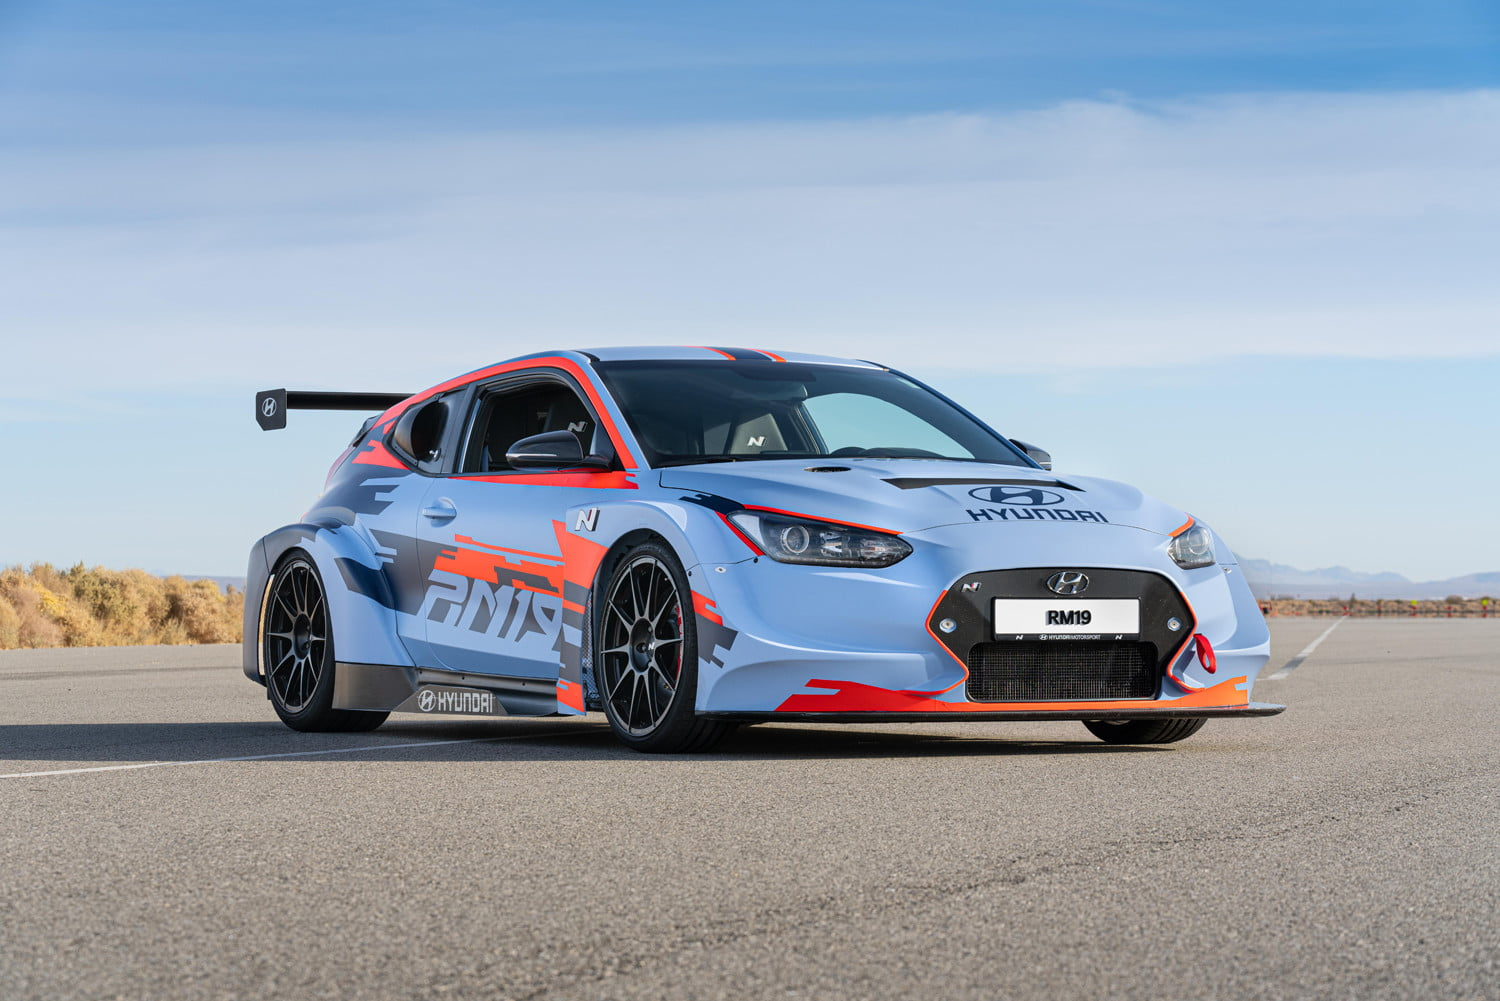 mid engined hyundai rm19 hot hatch unveiled at los angeles auto show 7